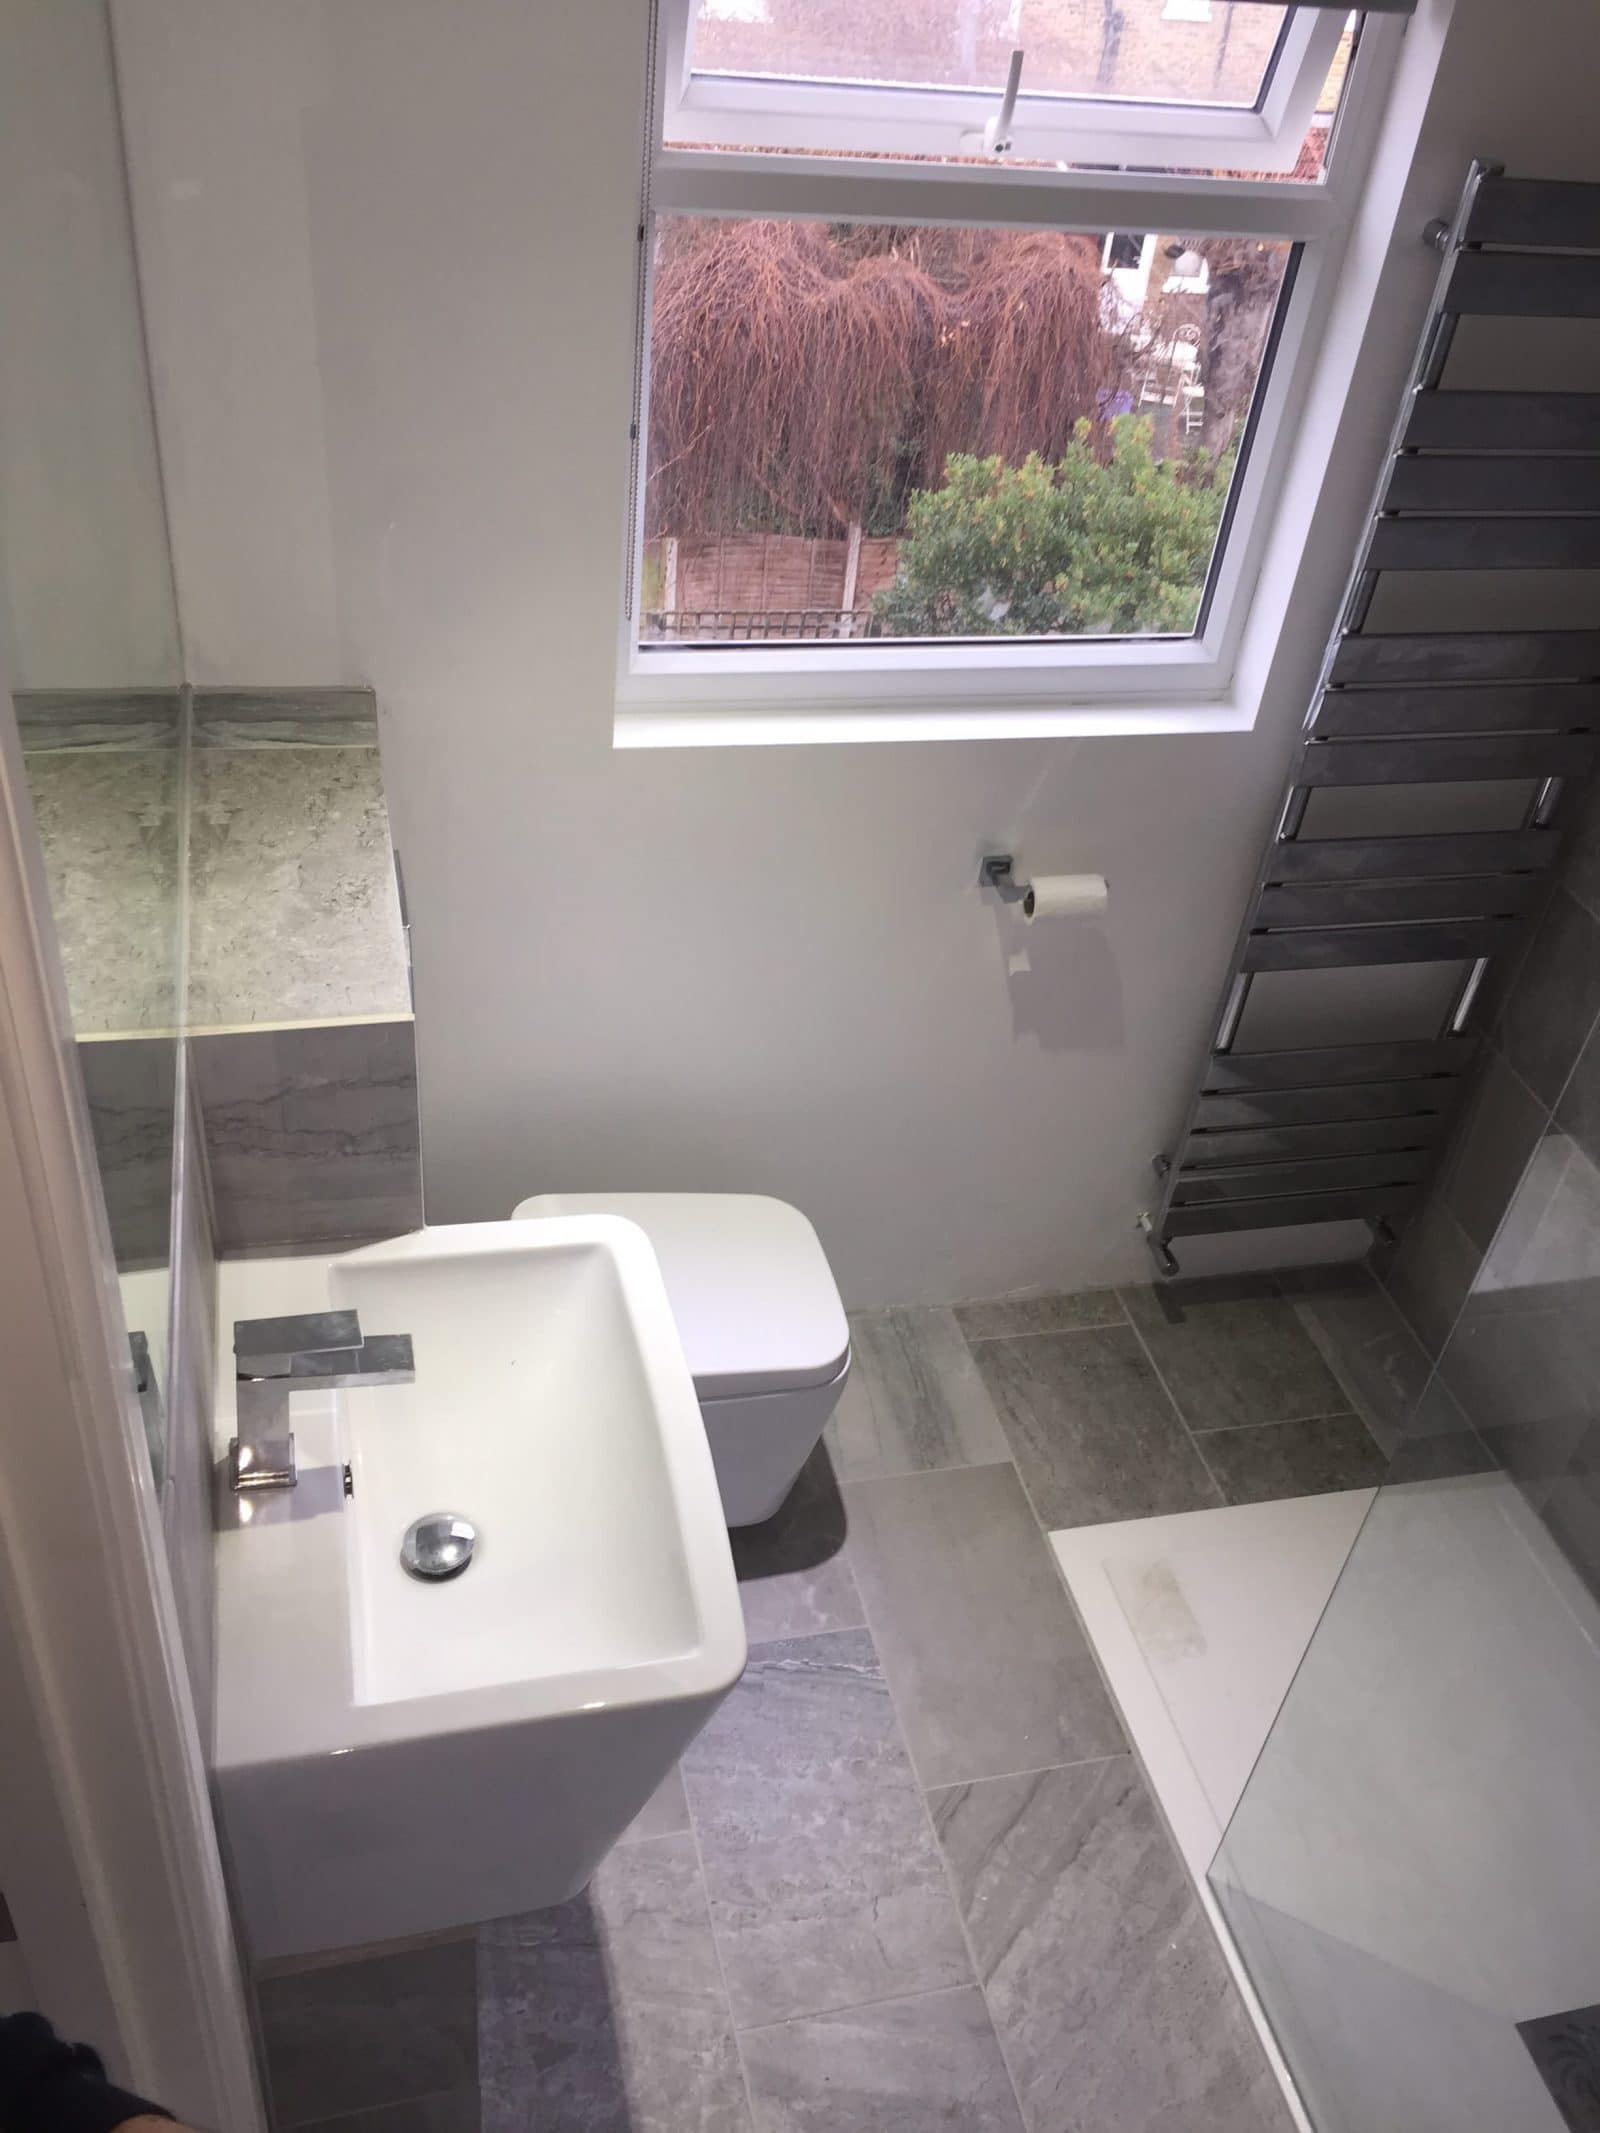 Bathroom view from above